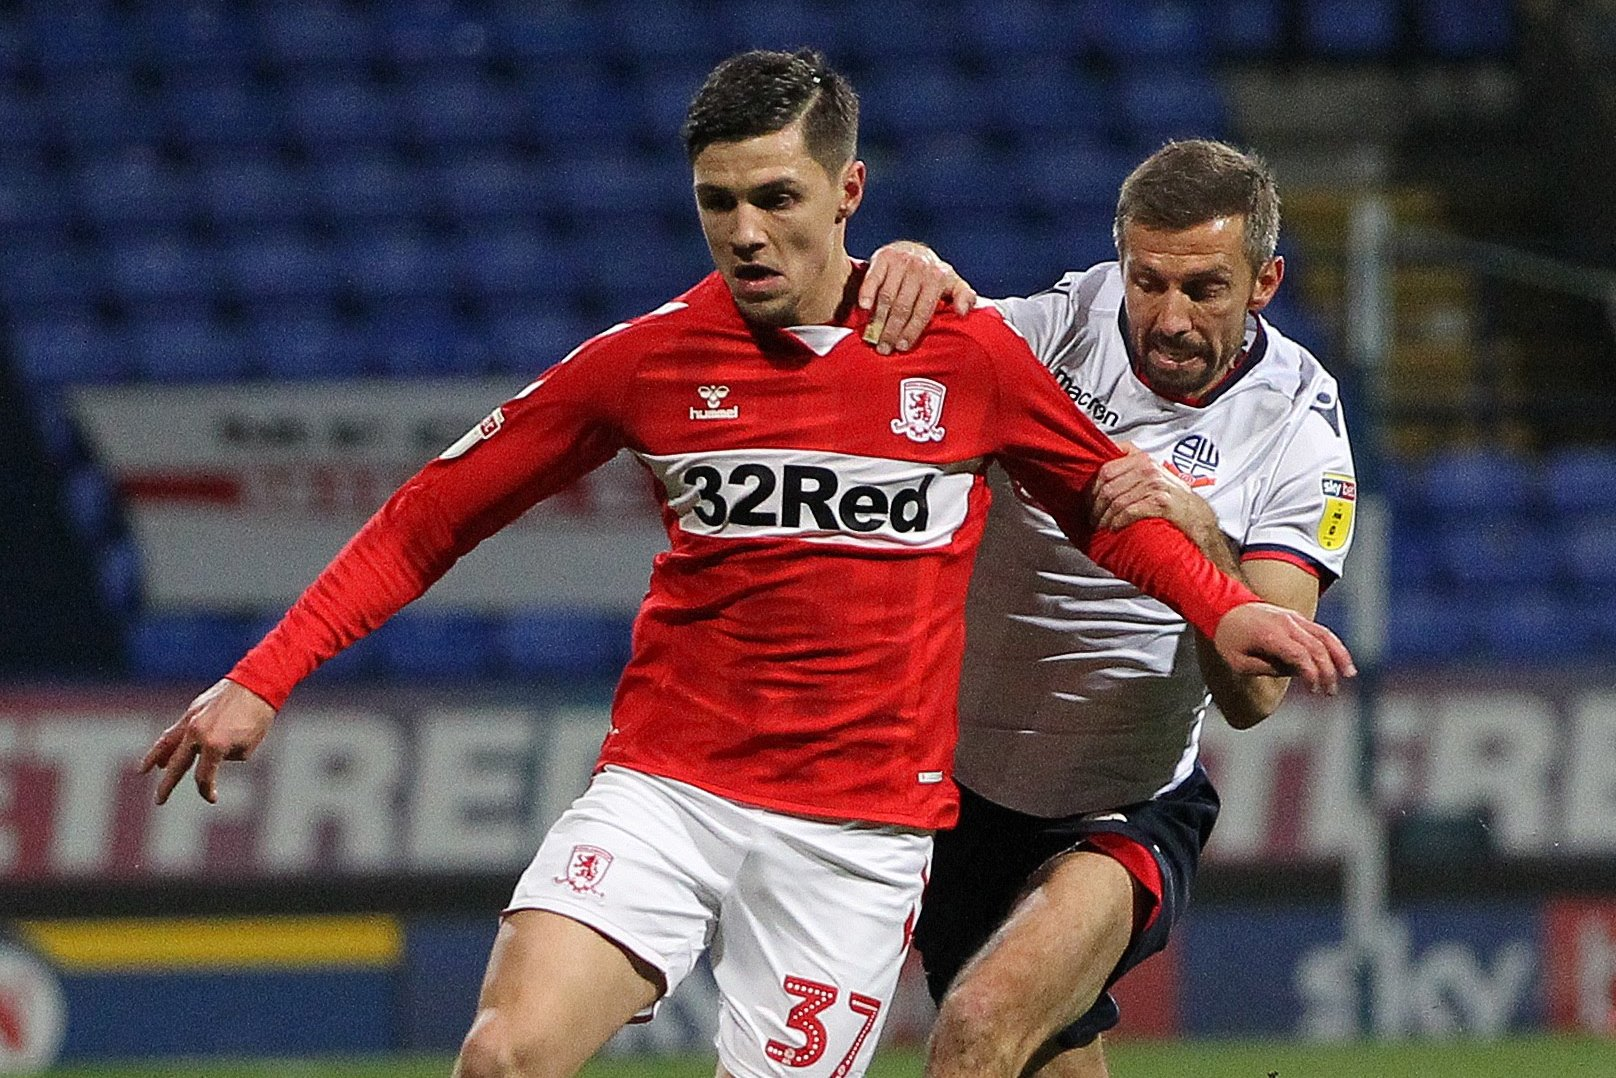 Mo Besic could now have crucial part to play after impressive return for Boro